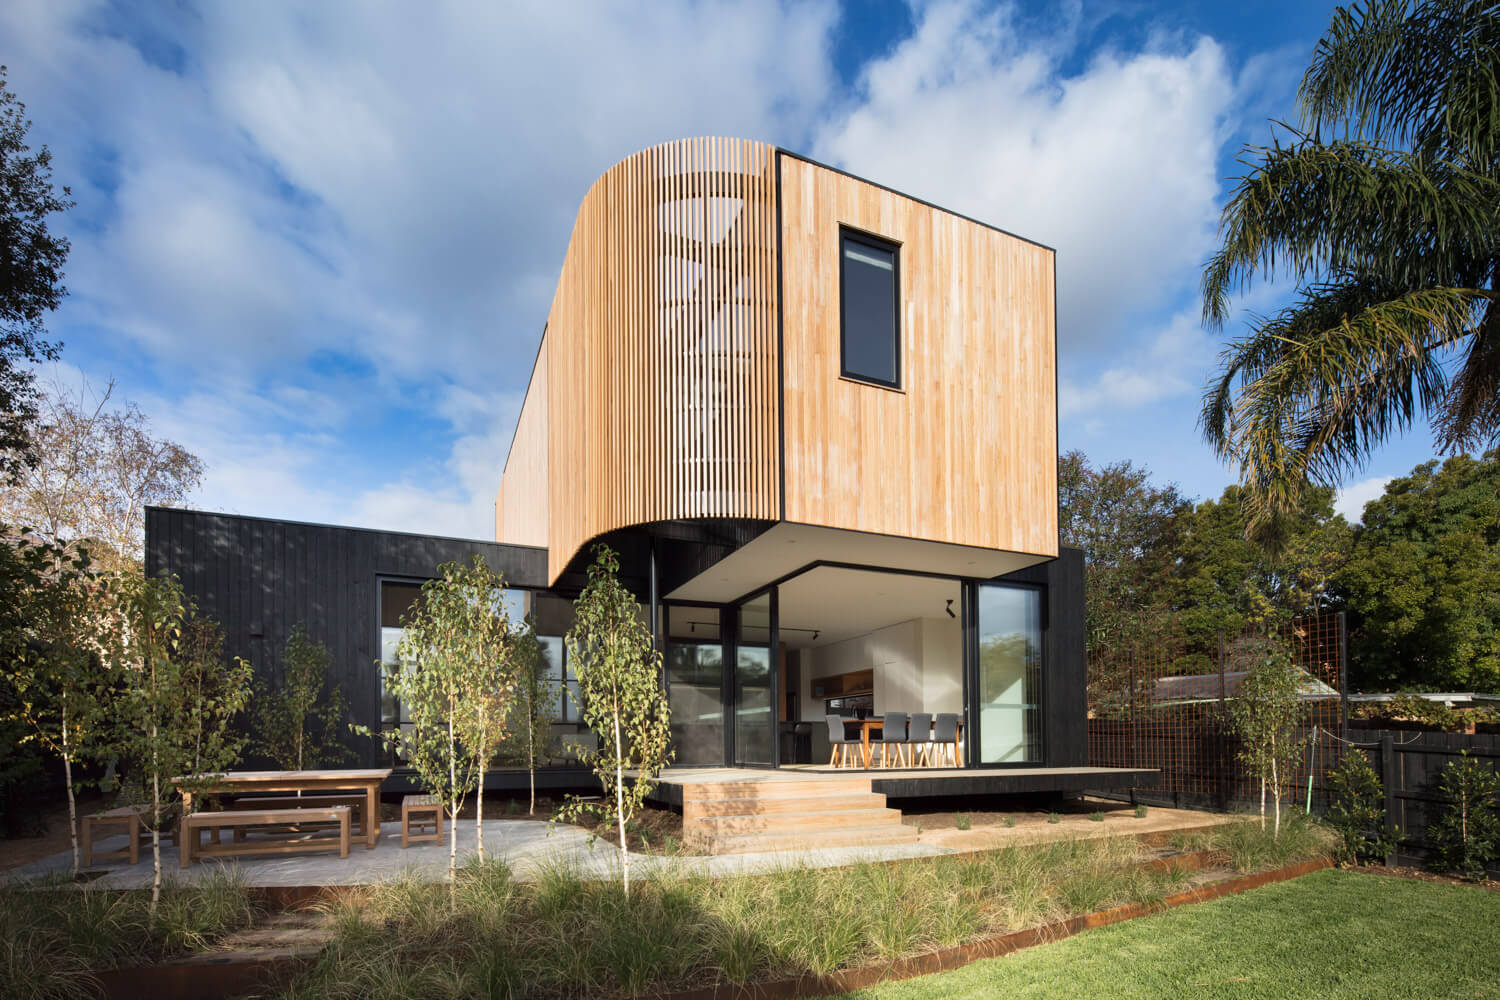 Groovy Ivanhoe Extension Modular Extensions Prefab Additions By Home Remodeling Inspirations Cosmcuboardxyz